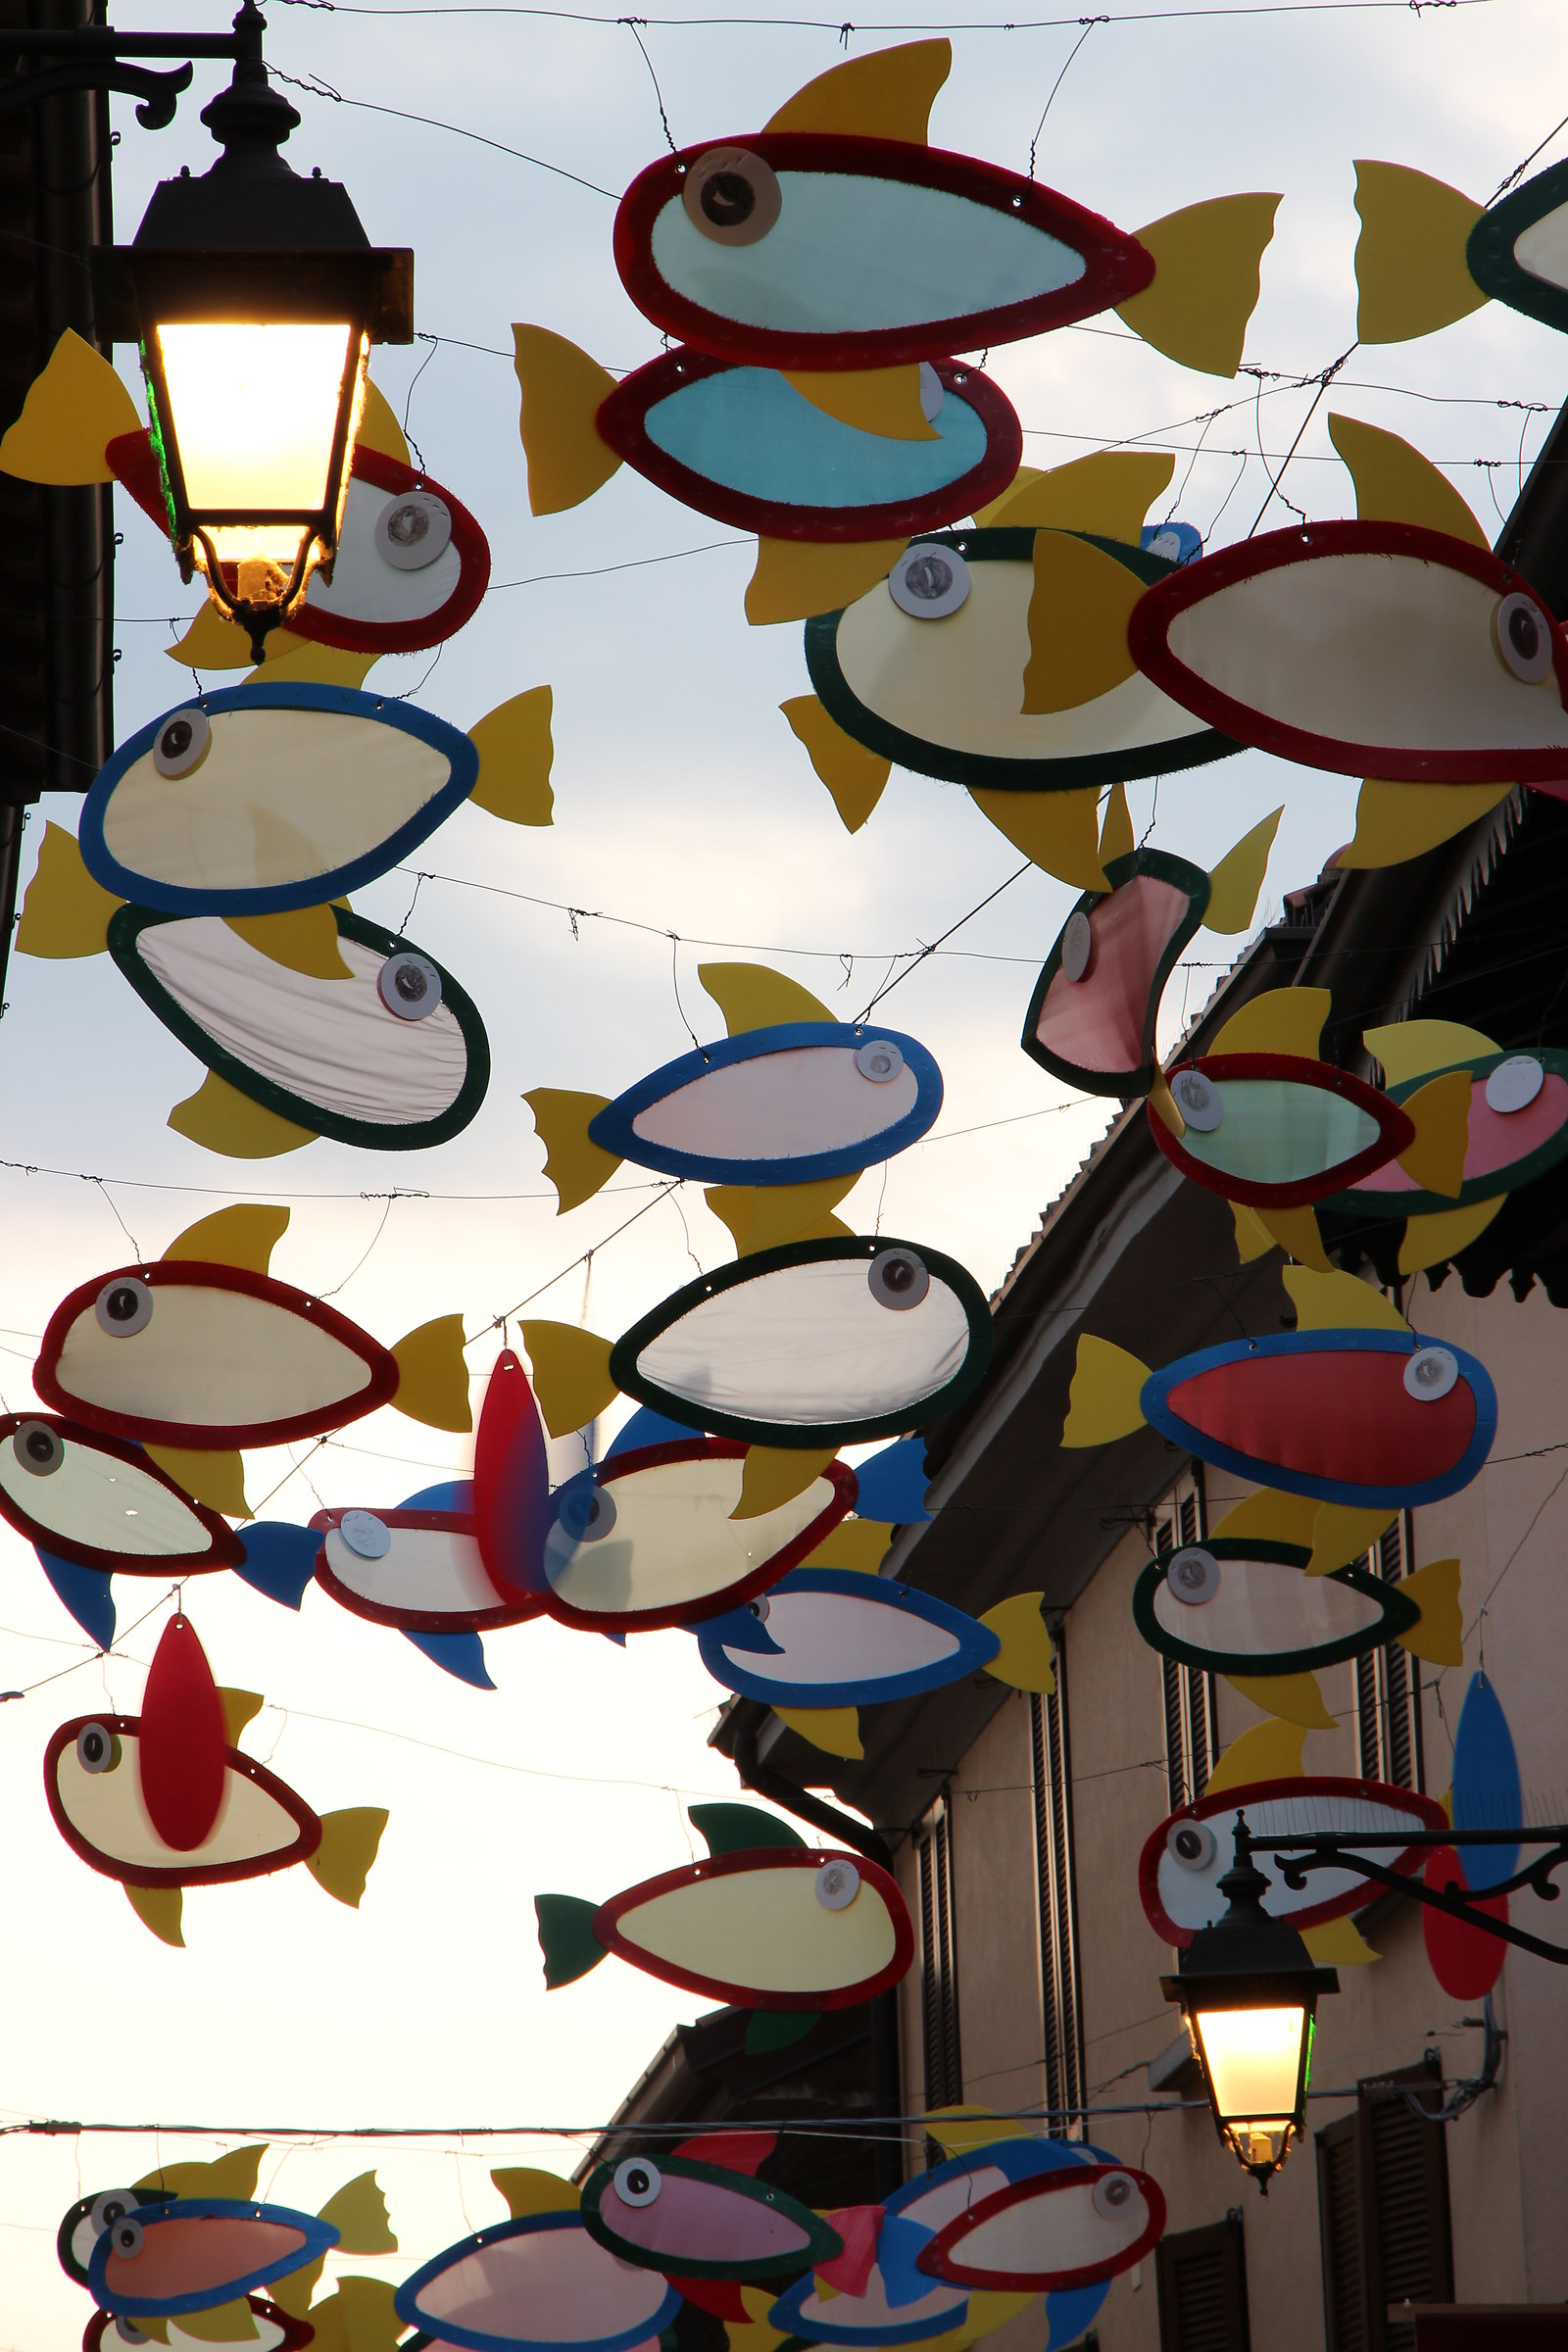 the fishes into the sky...